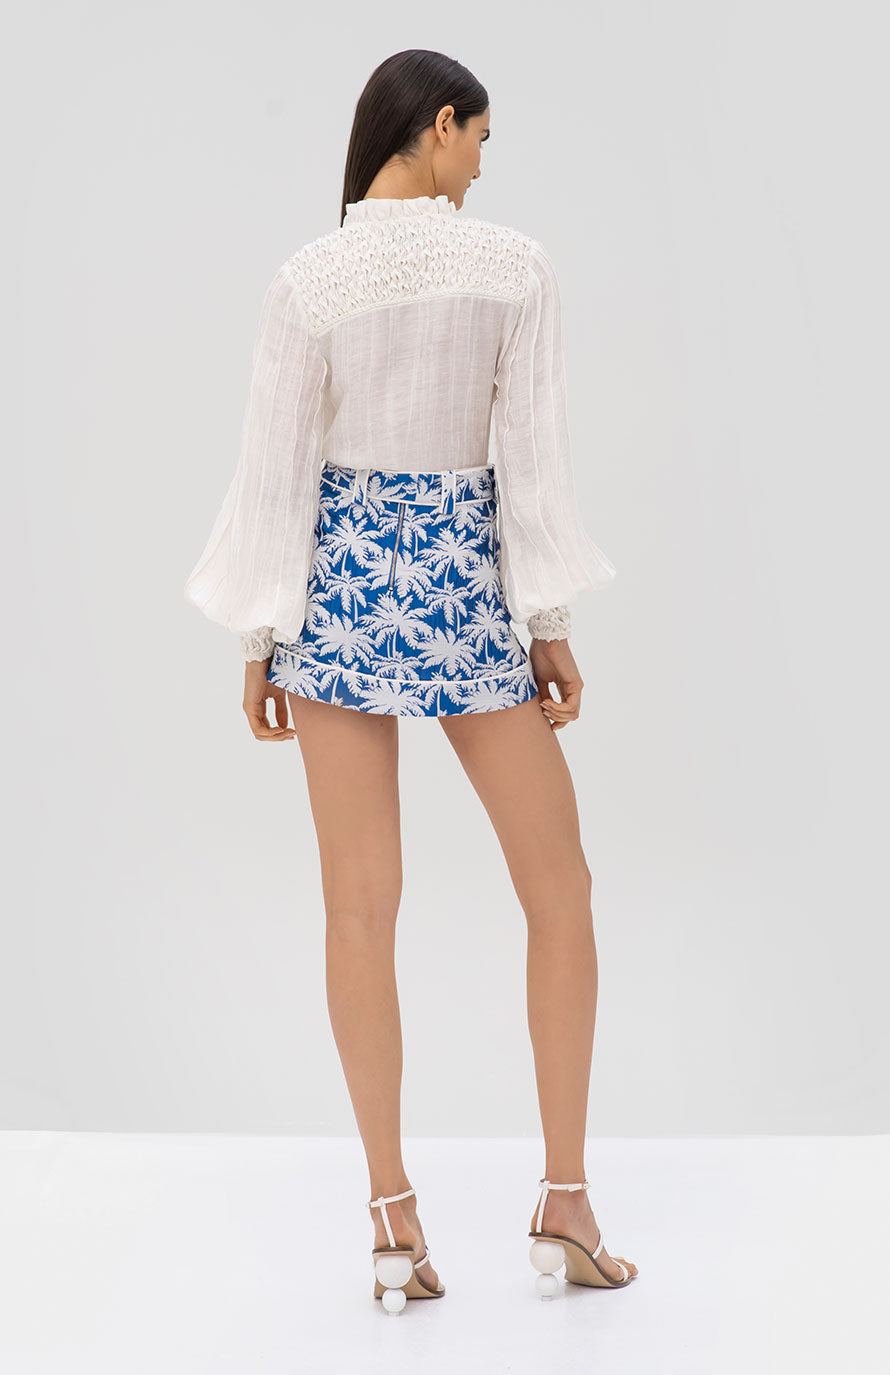 Alexis Minelli Top White and Lodi Skirt Blue Palm Jacquard - Rear View